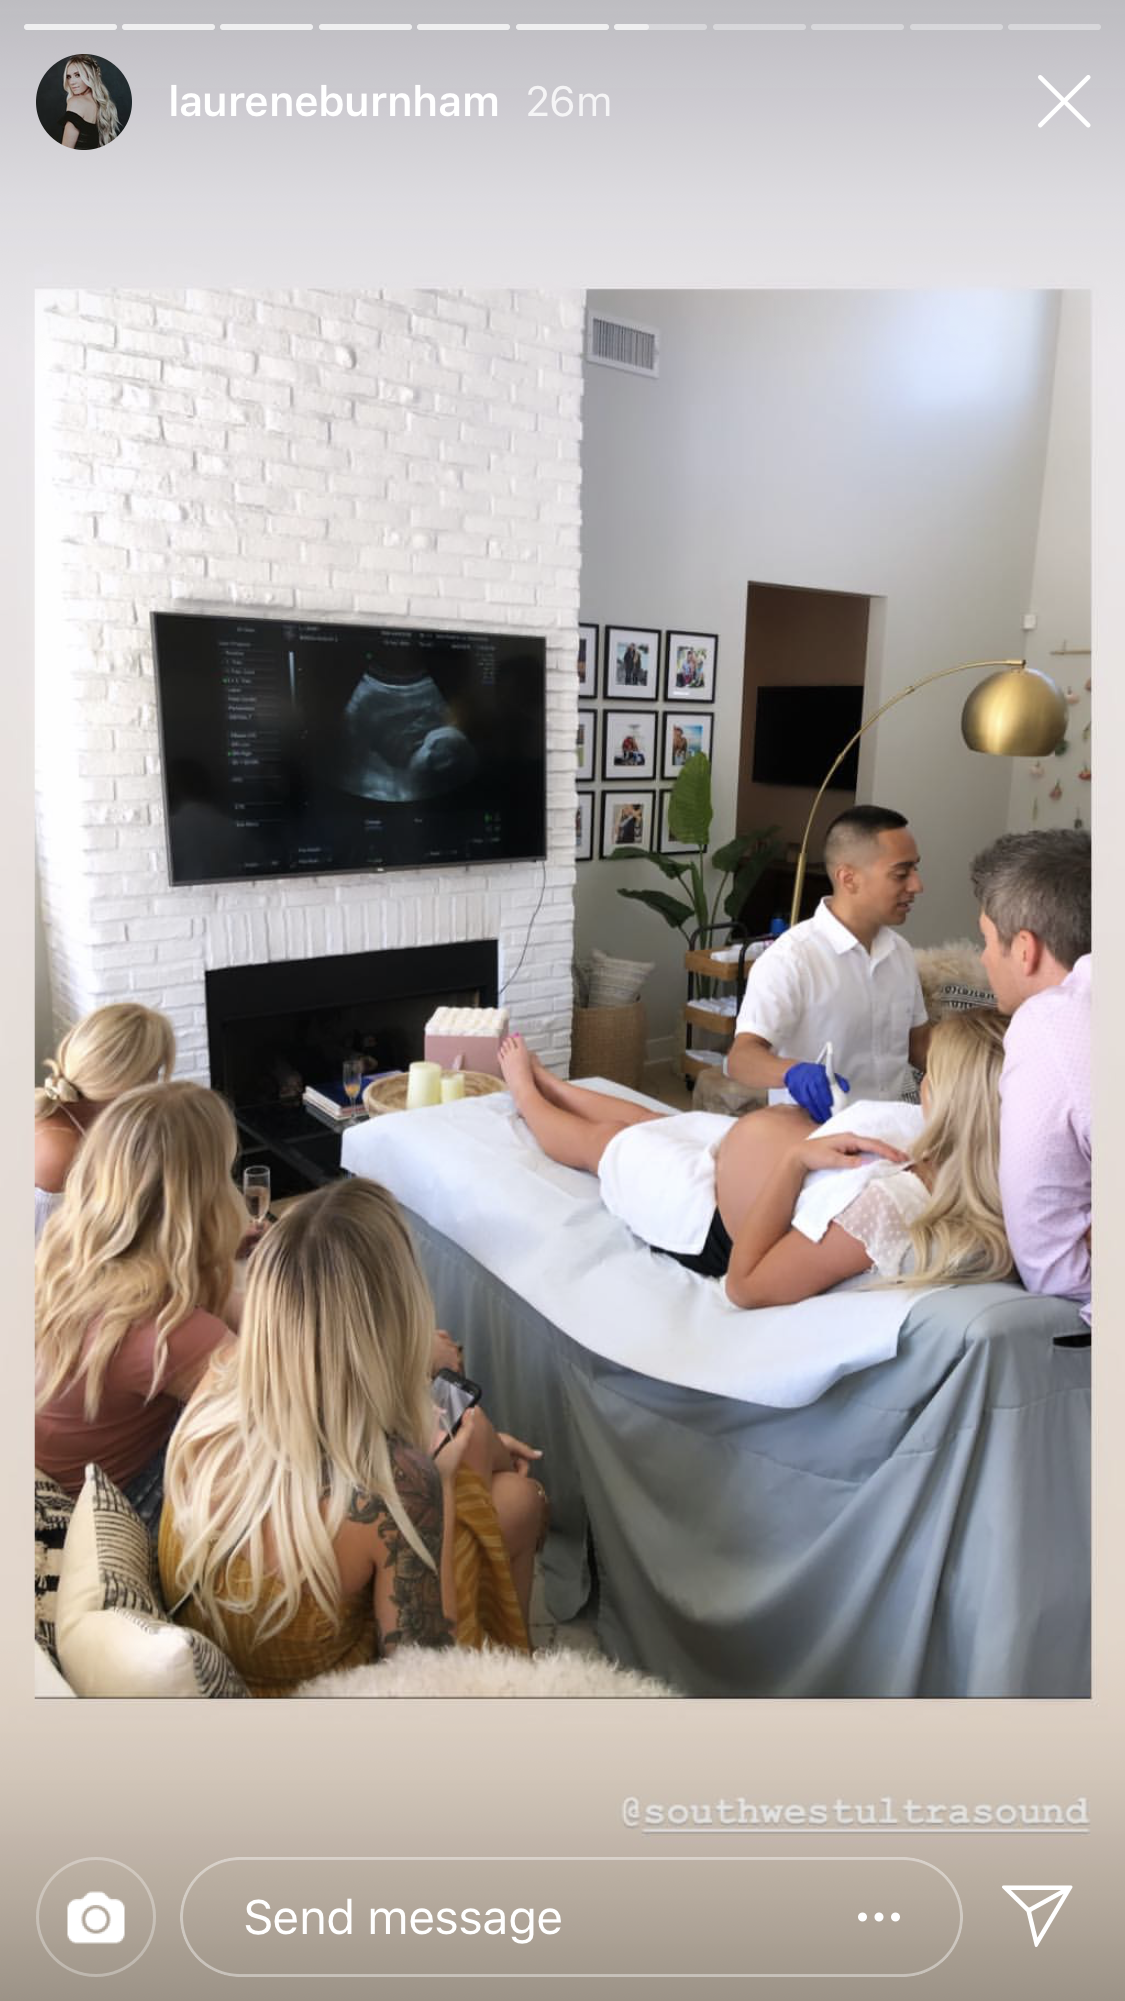 Arie Luyendyk Jr., Lauren Burnham Celebrate Baby Shower, Complete With Ultrasound Machine - Lauren had an ultrasound in her living room while Arie stood behind her.